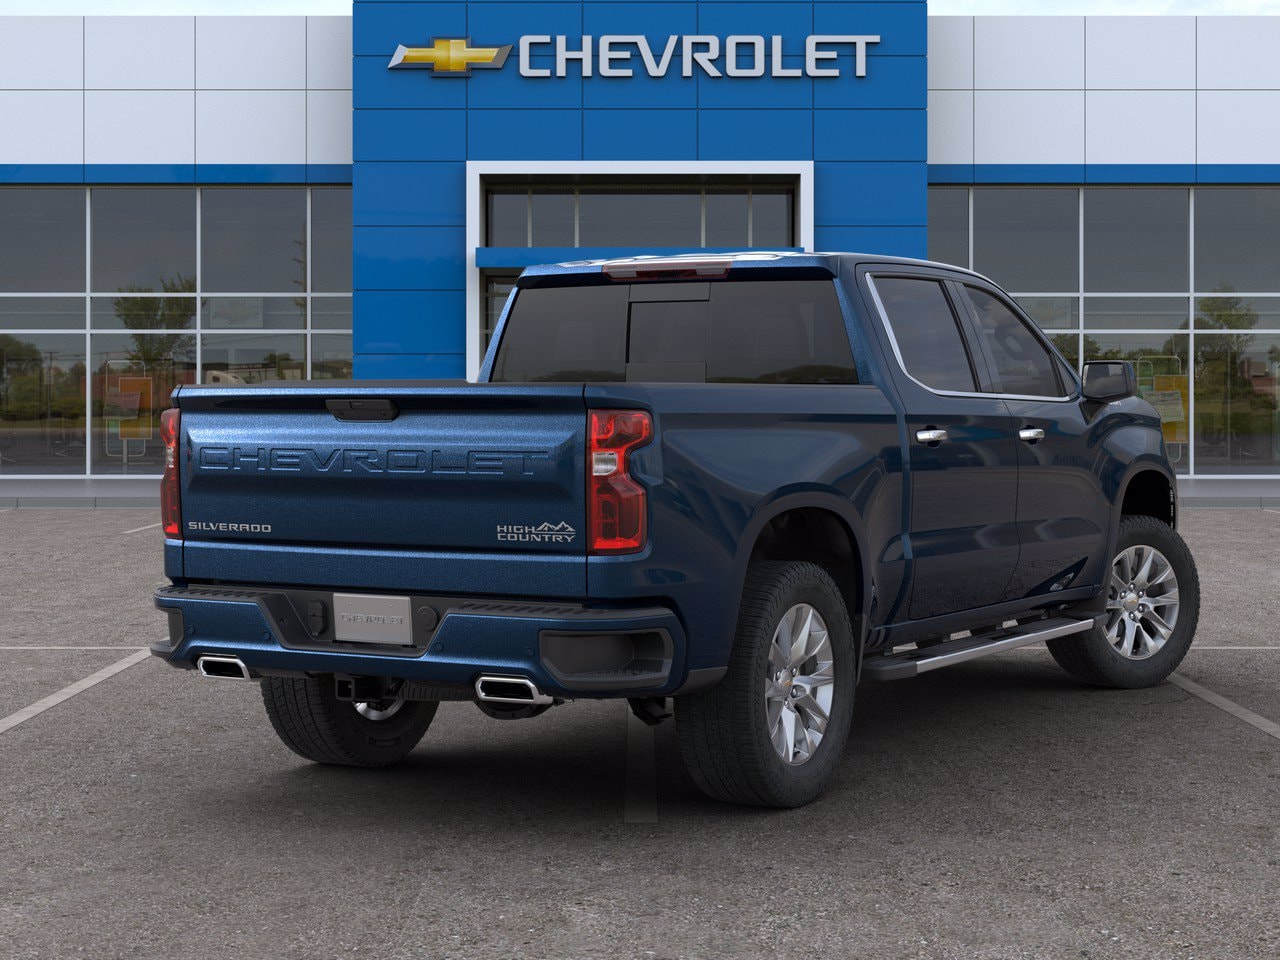 2020 Chevrolet Silverado 1500 Crew Cab 4x4, Pickup #C201648 - photo 2